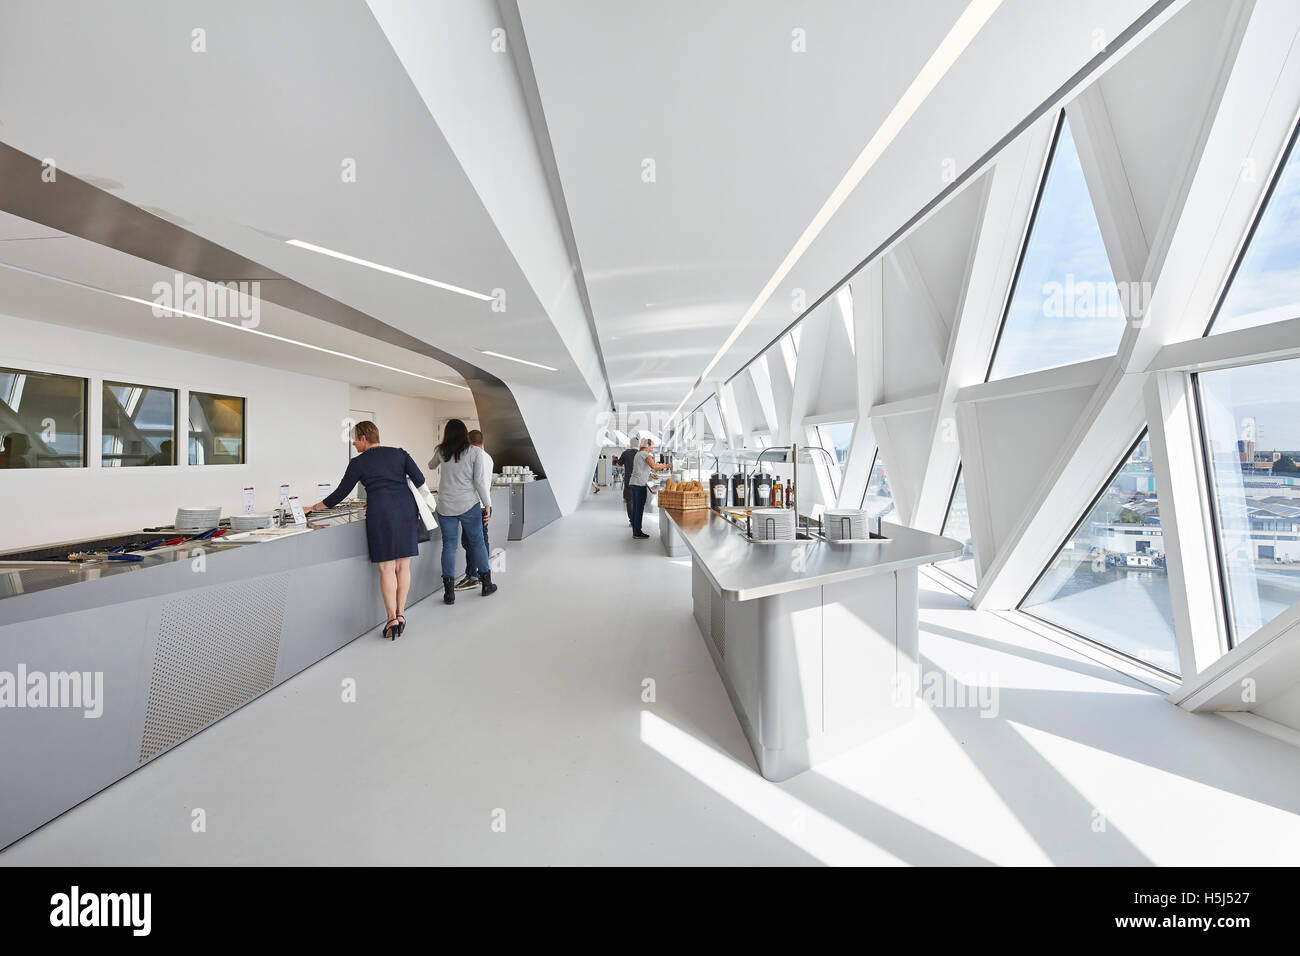 Restaurant With Window Wall Port House Antwerp Belgium Architect Stock Photo Alamy